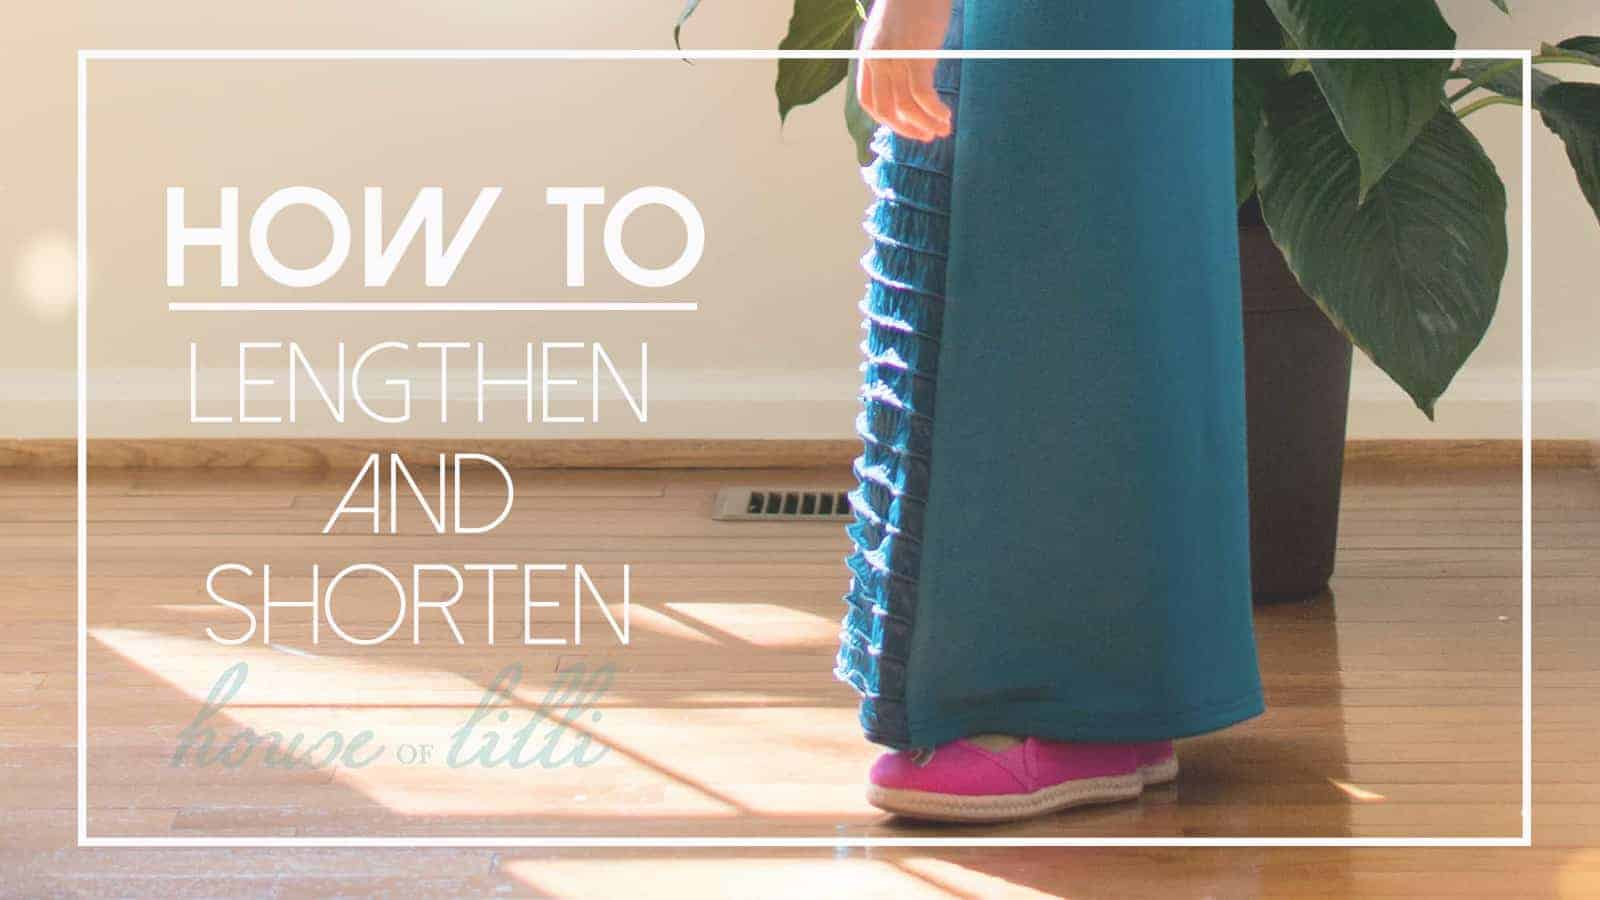 How to Lengthen or Shorten a Pattern